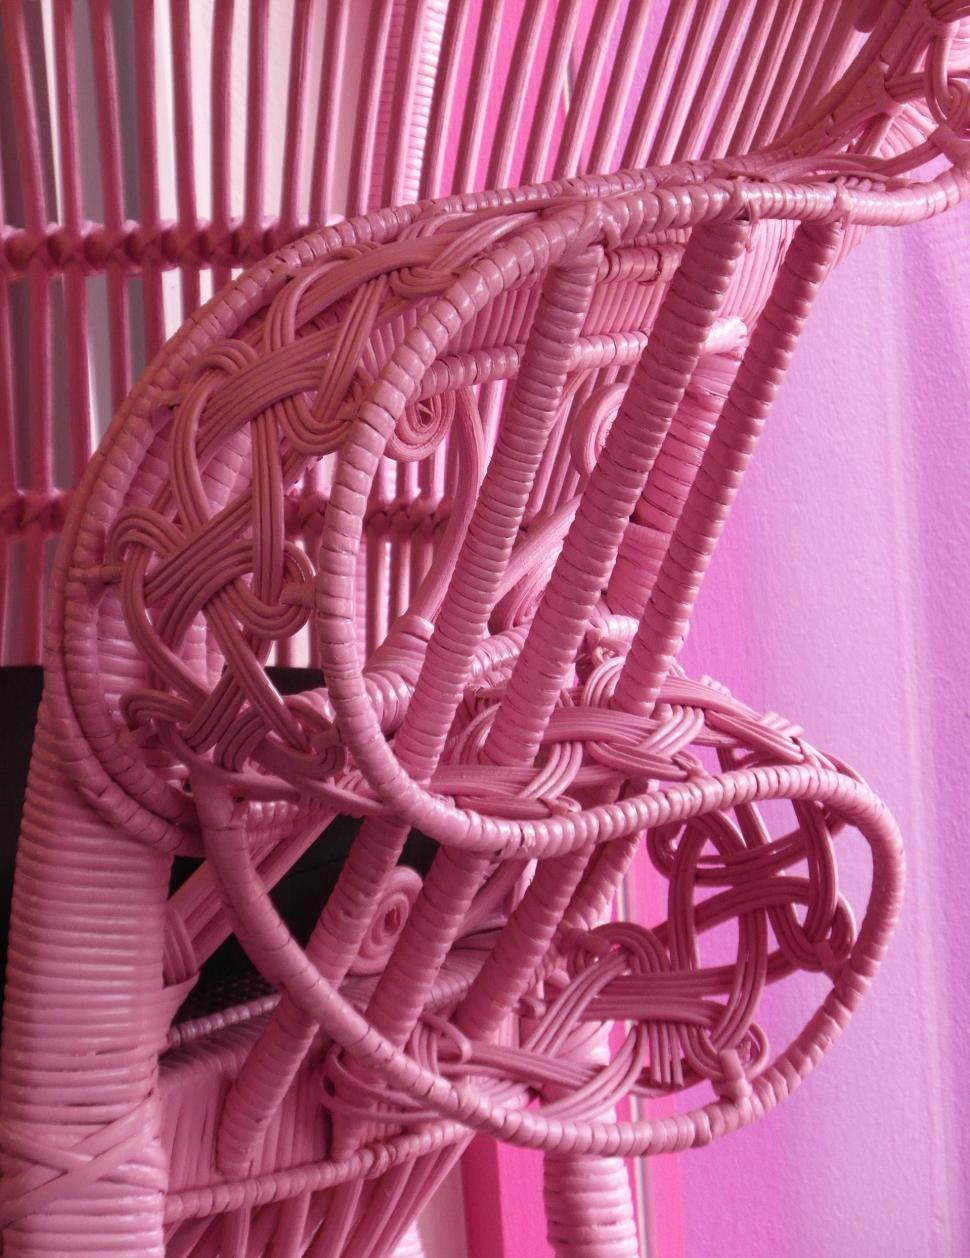 Download Free Stock HD Photo of Pink Wicker Chair Online